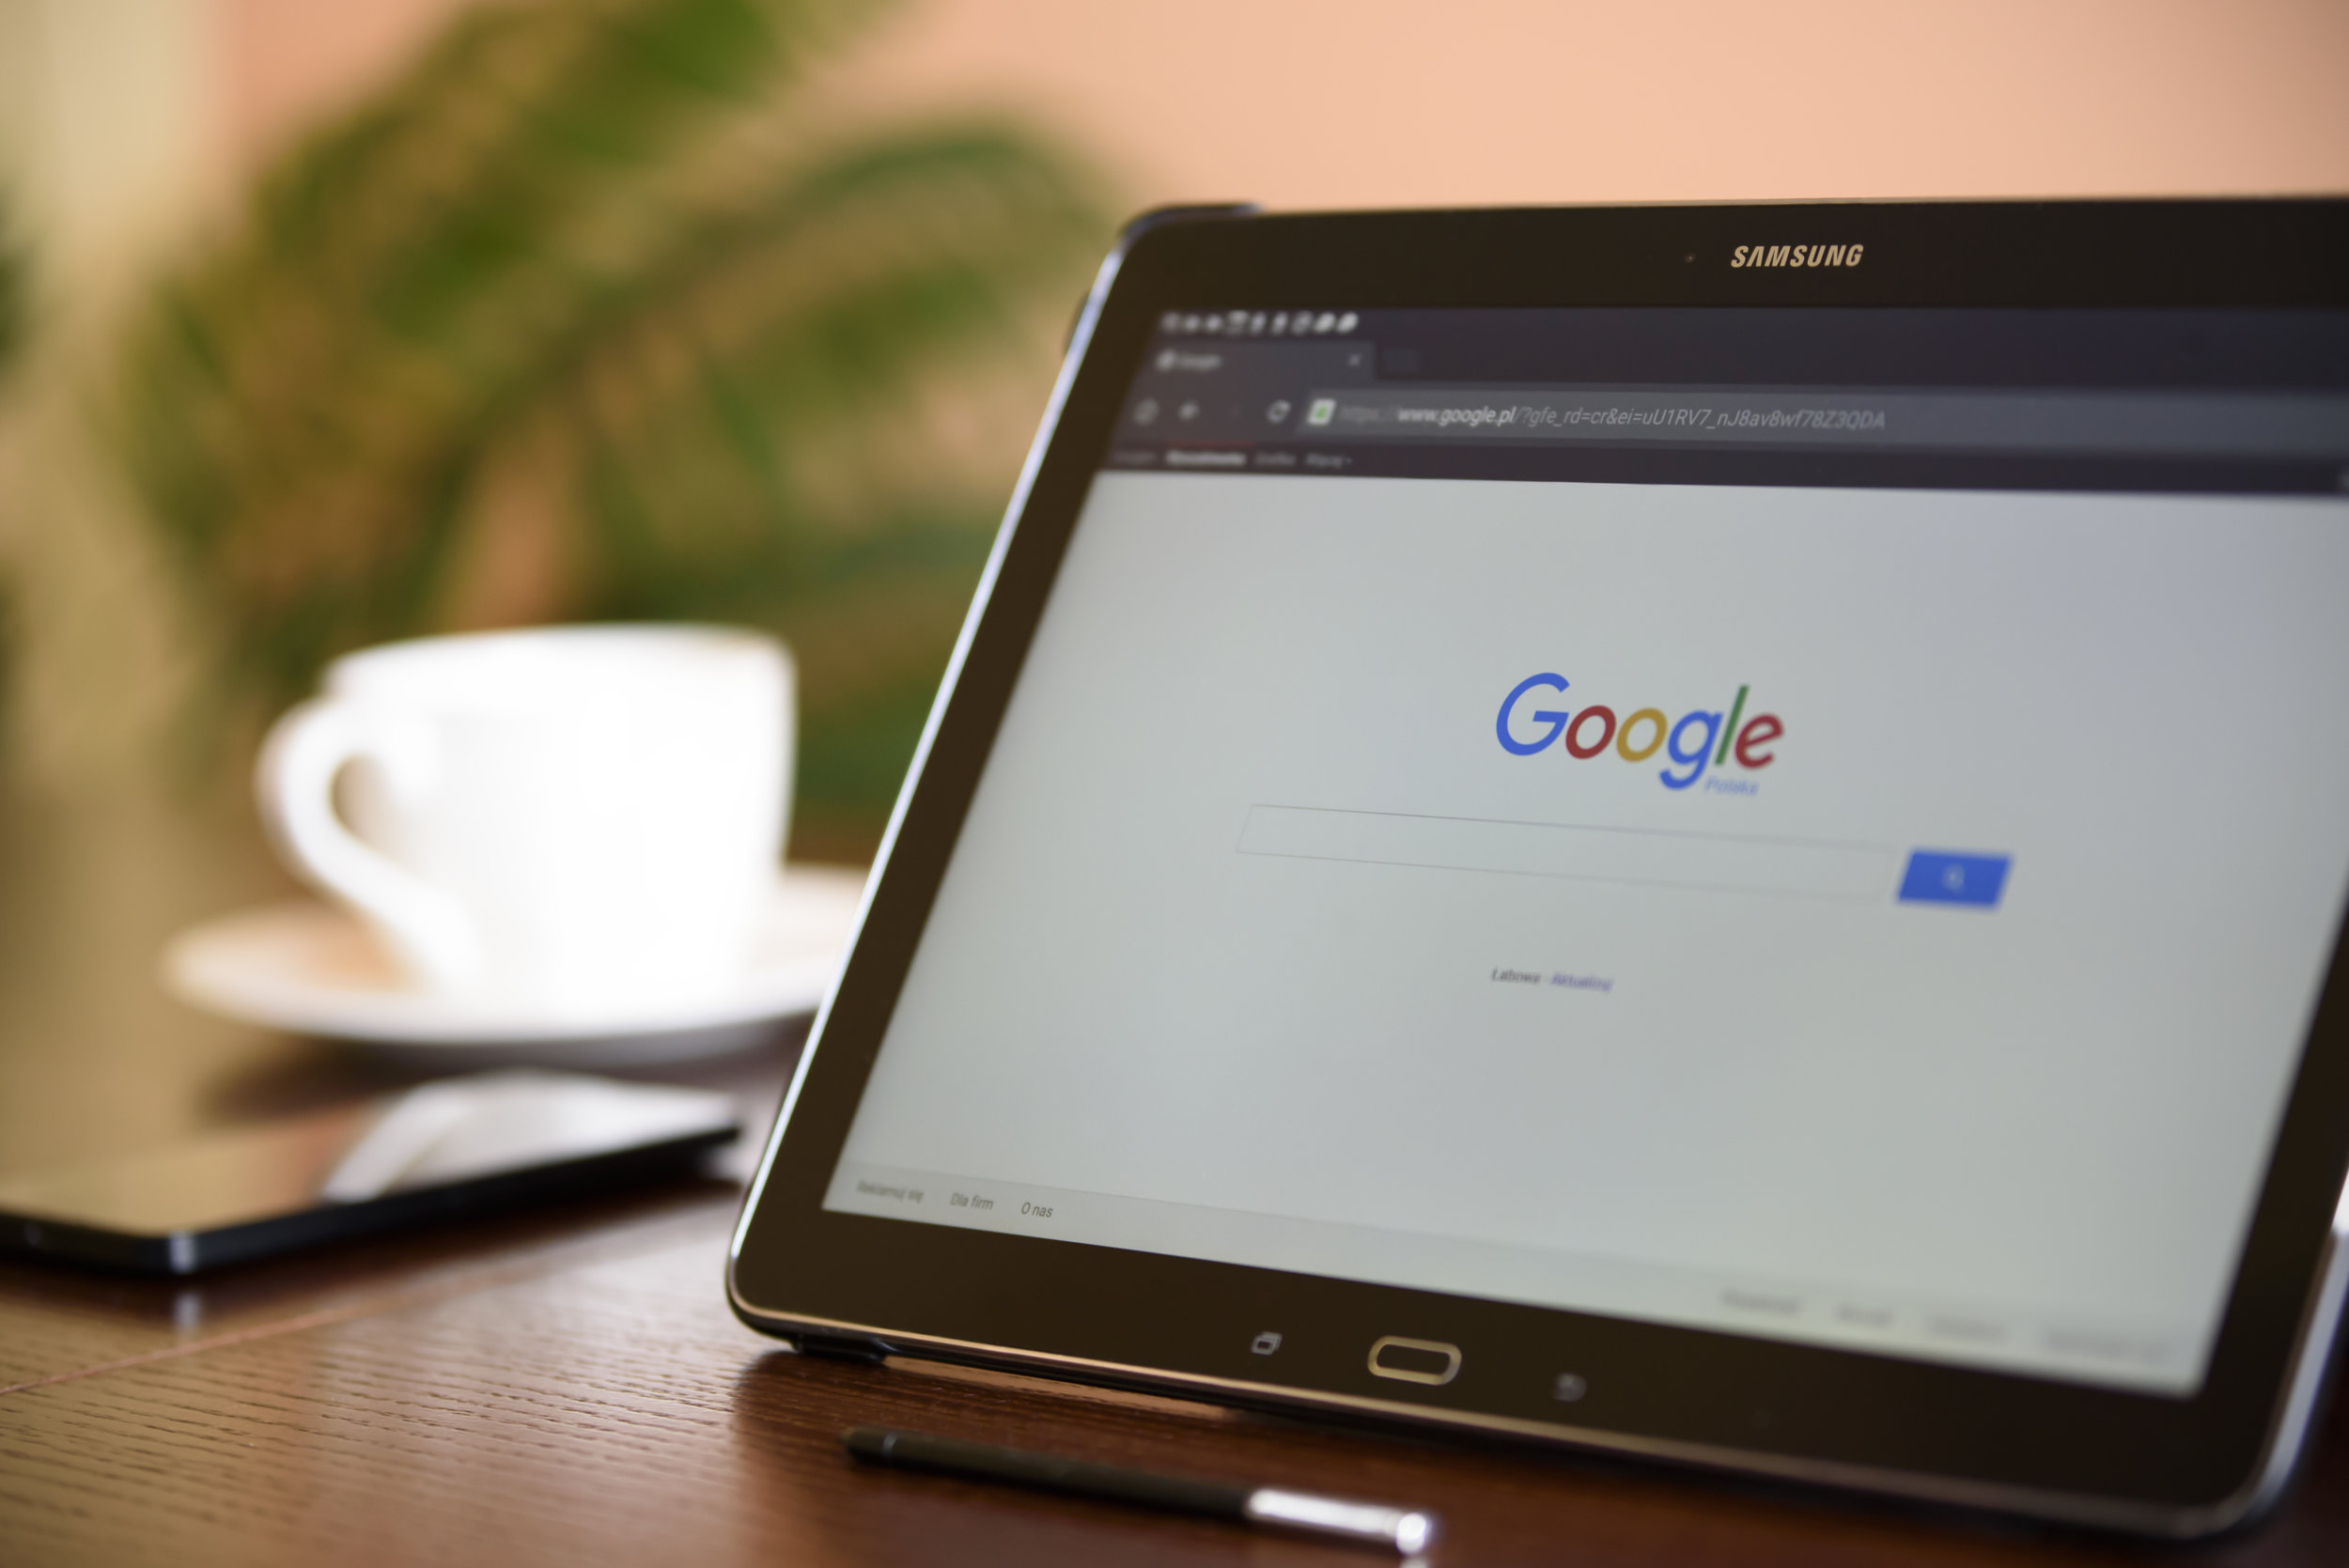 Google's new Mobile First indexing is set to change the way designers build websites completely.